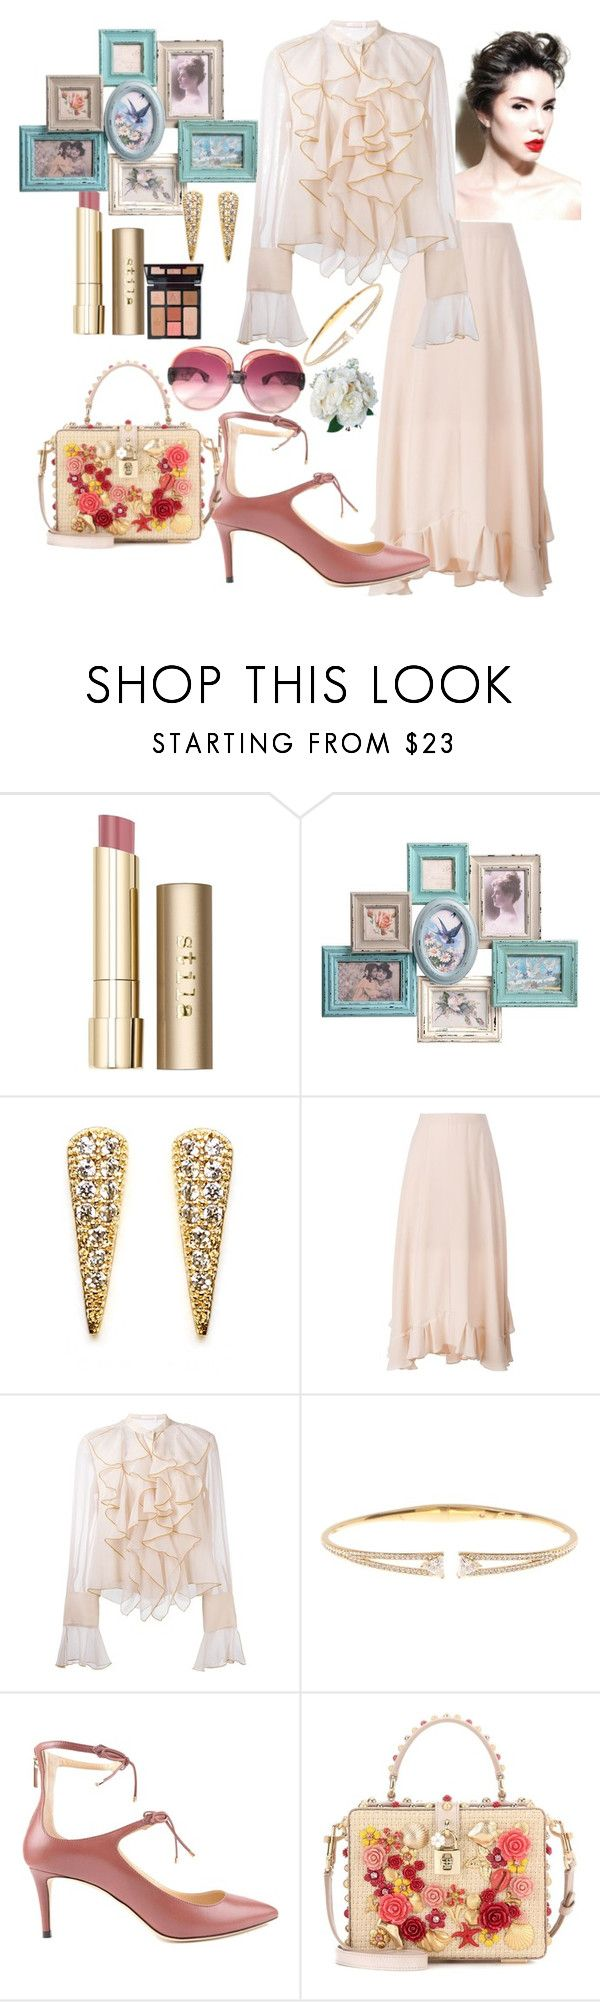 """Untitled #653"" by csfshawn on Polyvore featuring Stila, Melanie Auld, Chloé, See by Chloé, Charlotte Tilbury, Nadri, Jimmy Choo, Dolce&Gabbana and Yves Saint Laurent"